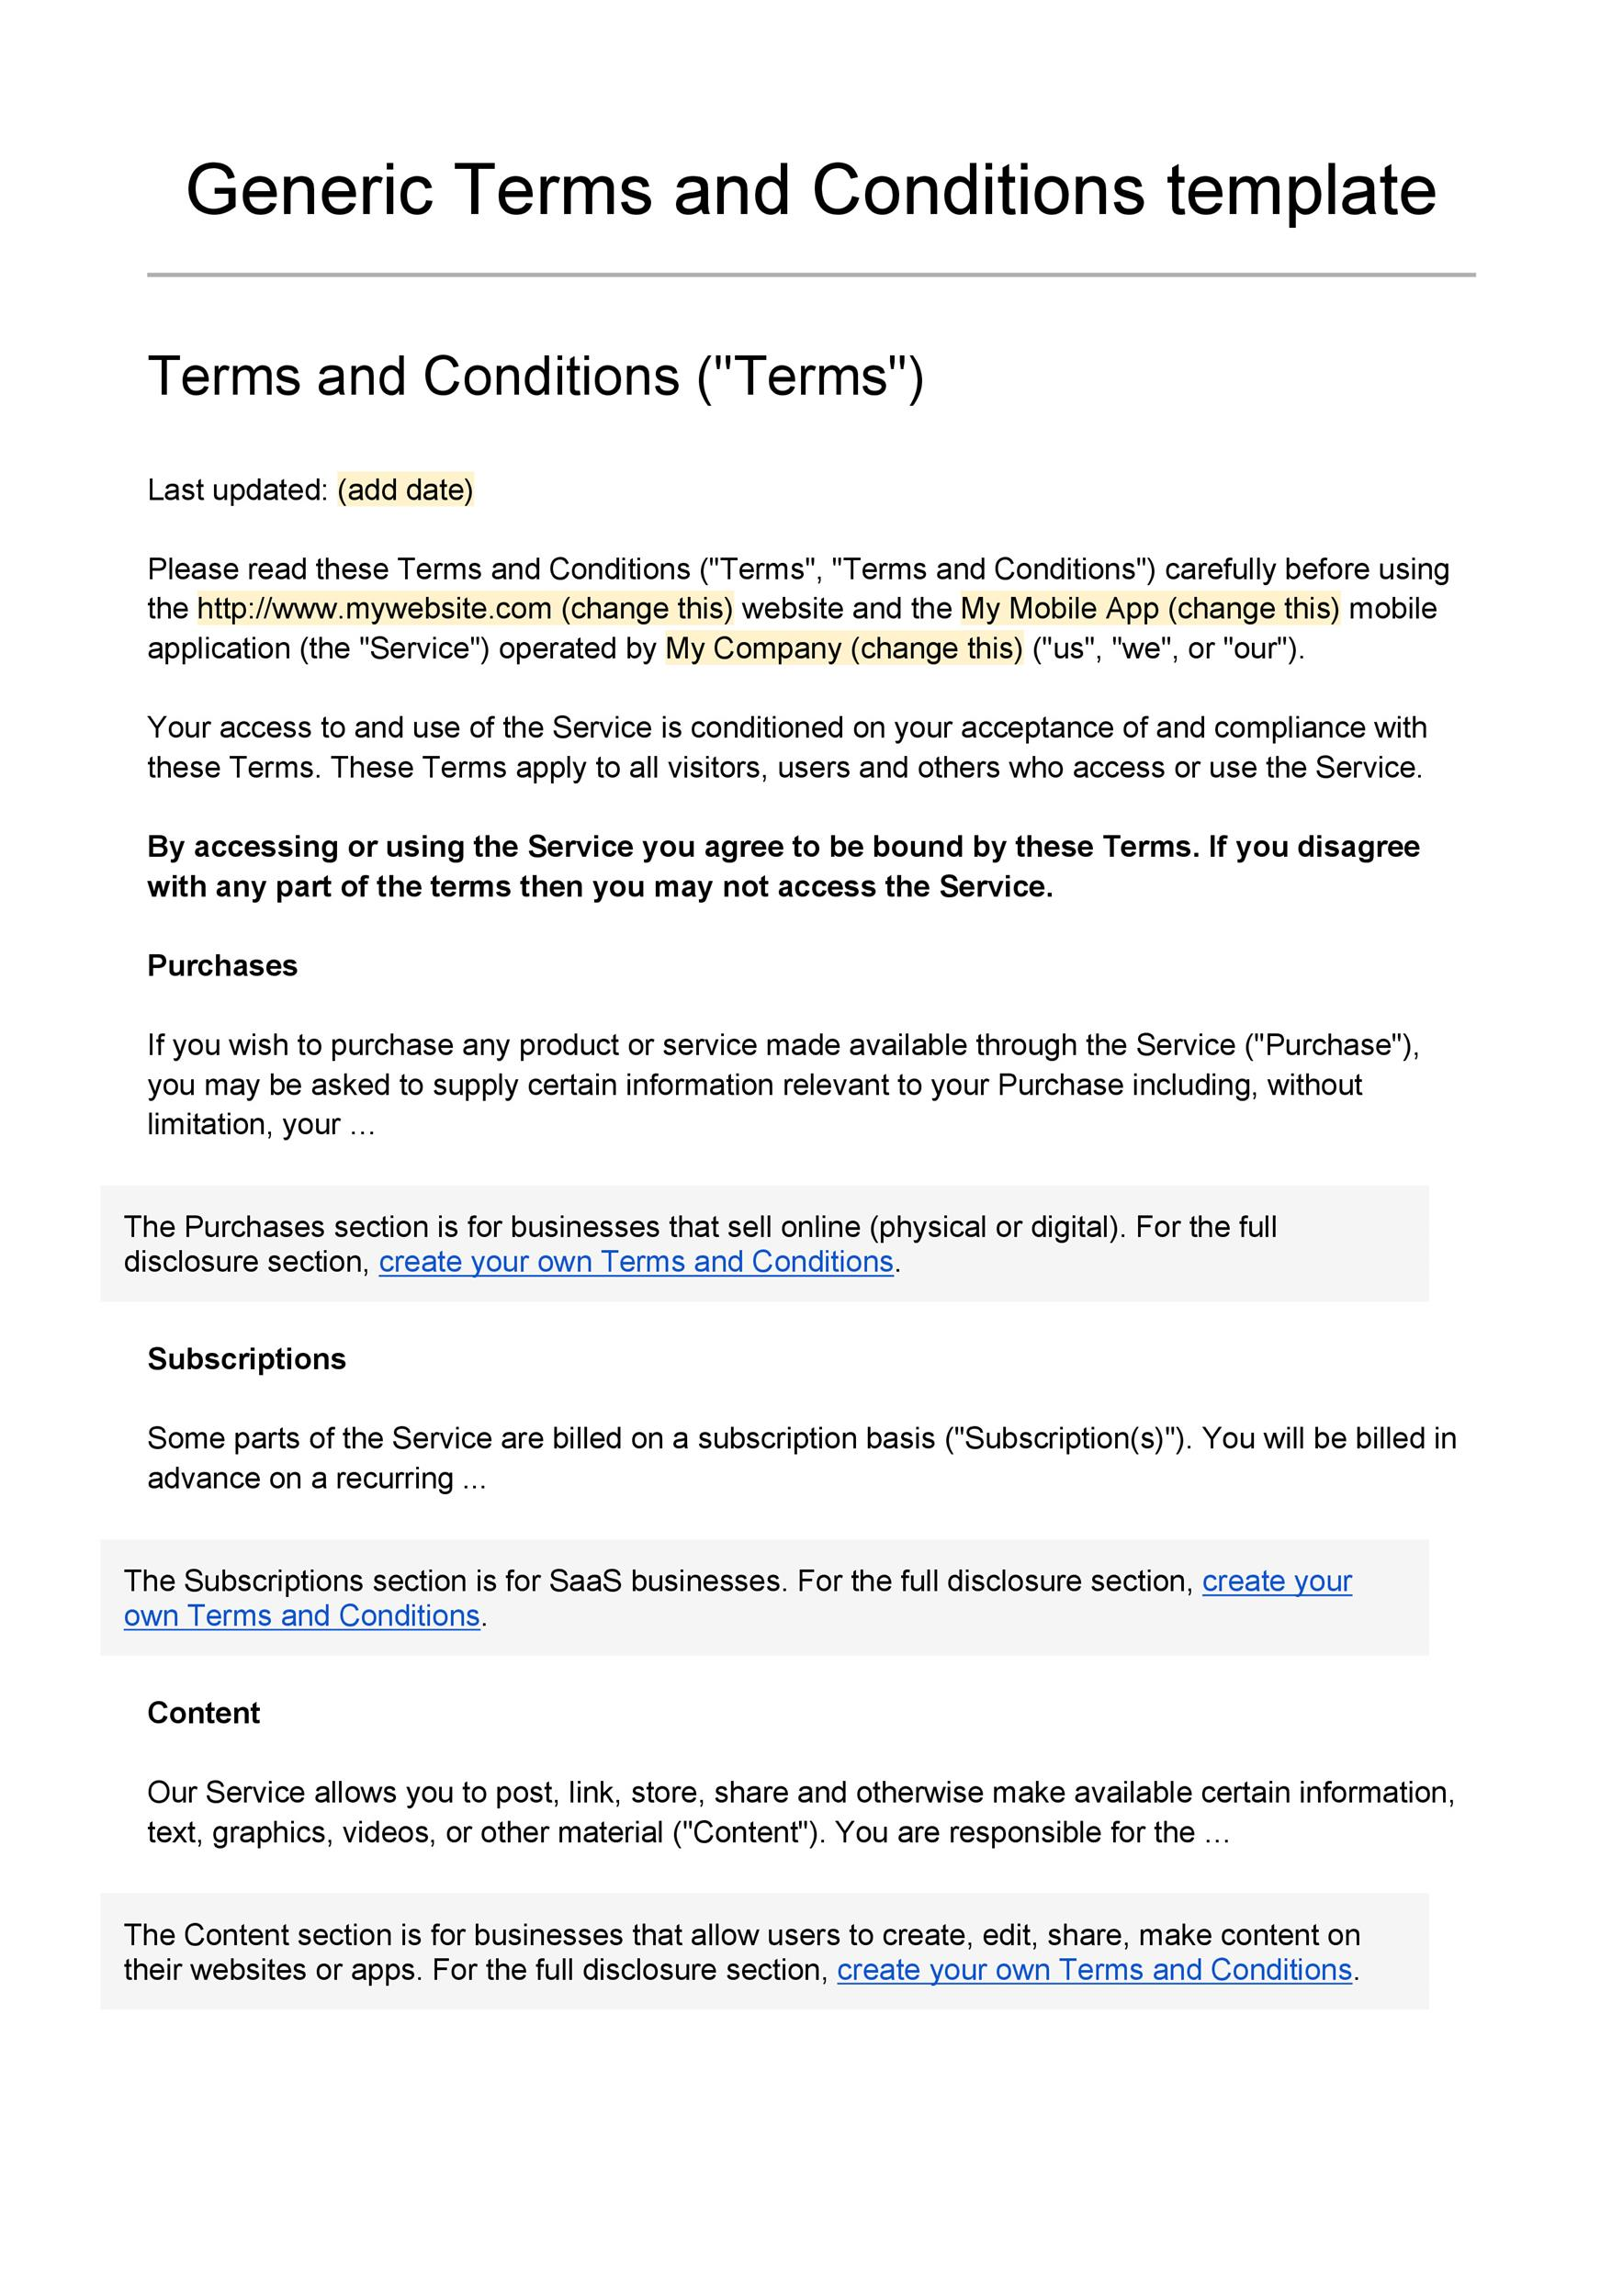 40 free terms and conditions templates for any website for Wholesale terms and conditions template